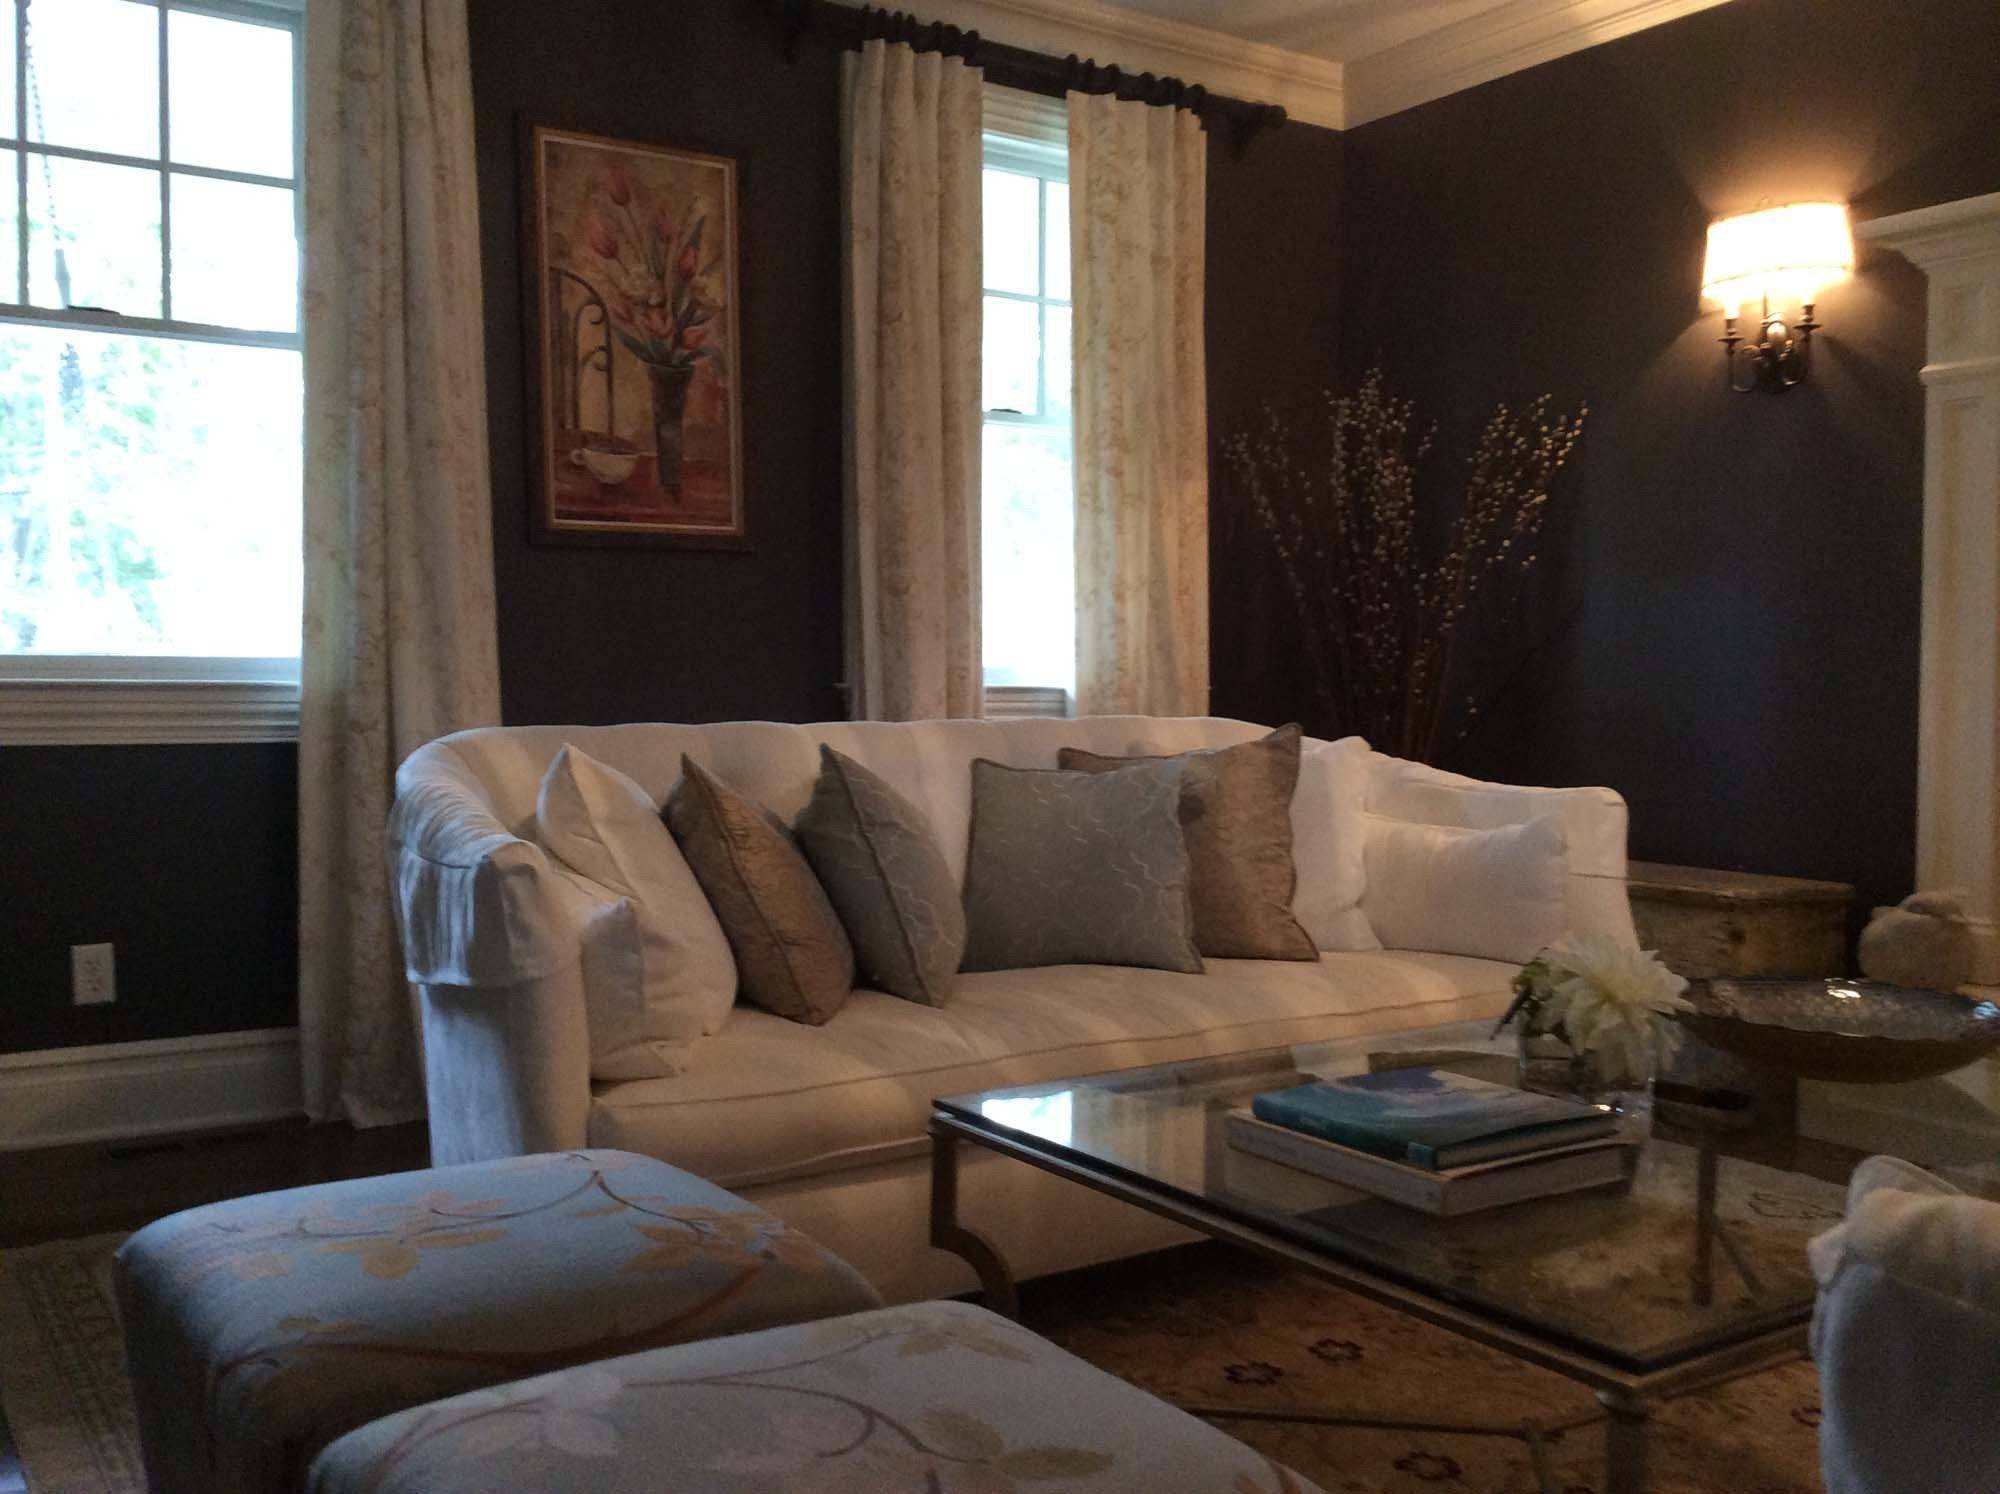 Design job by our home decorator in Darien